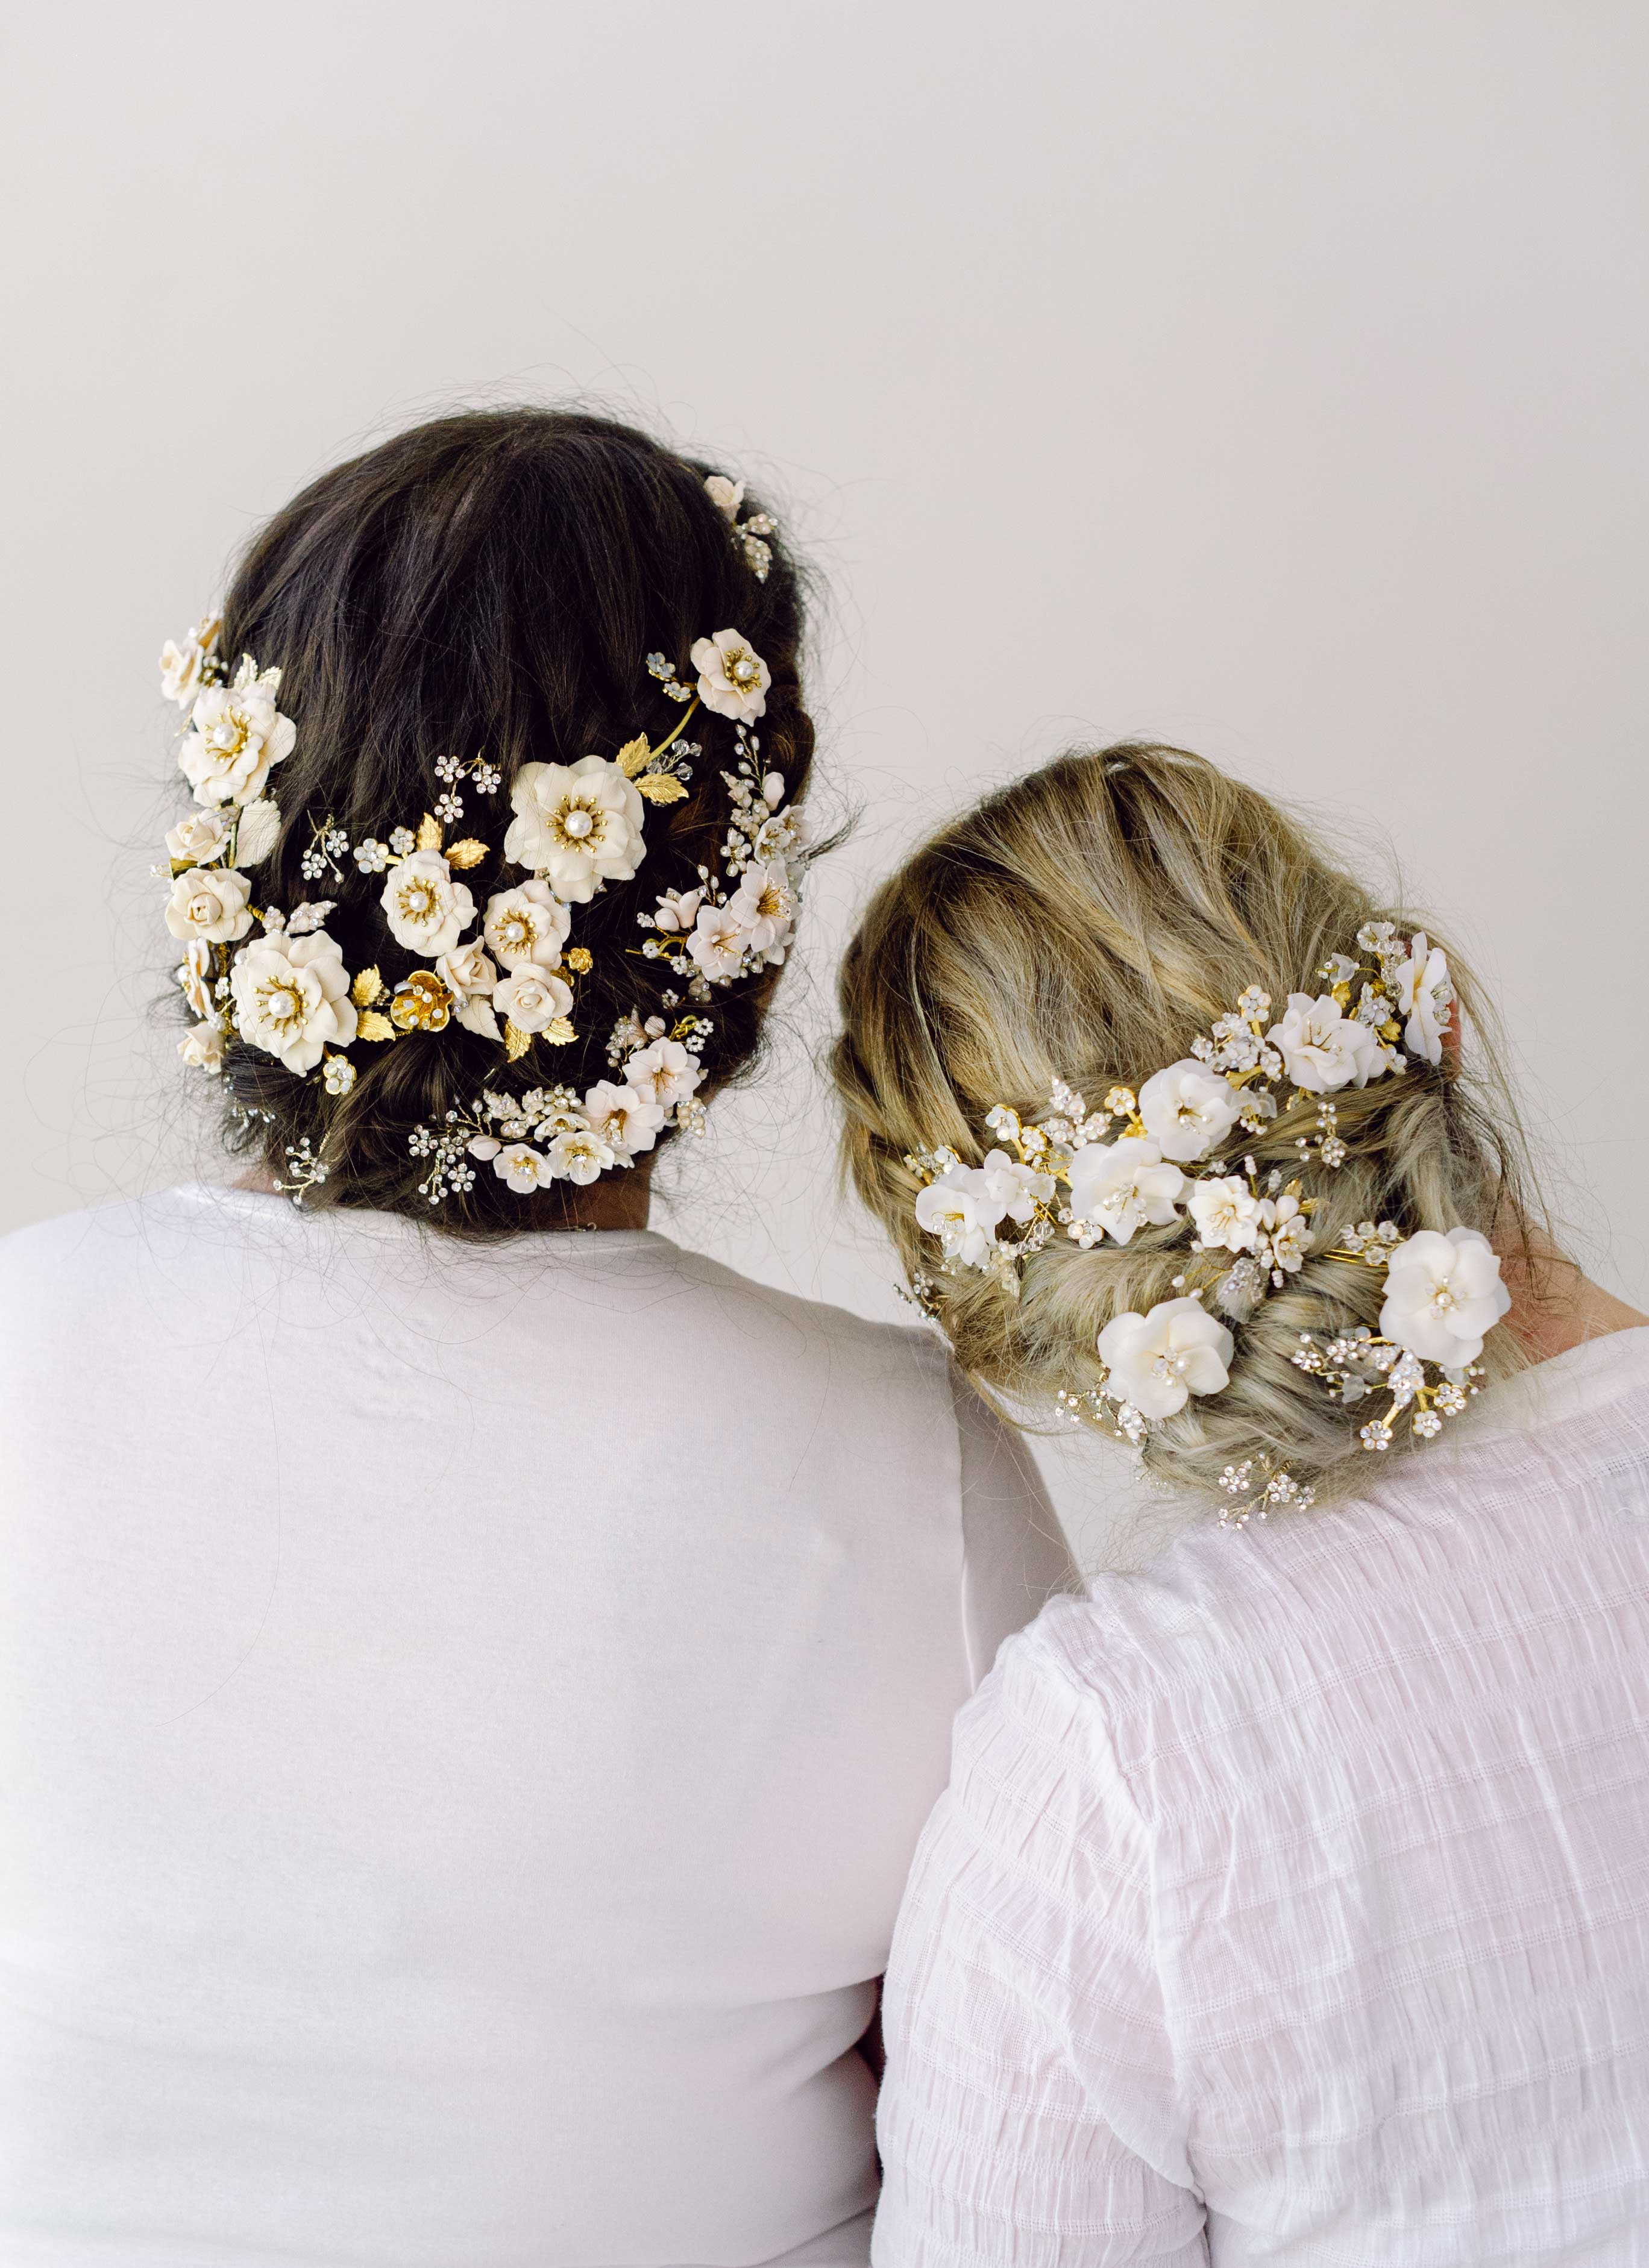 Beautiful handmade hair flowers by Twigs & Honey